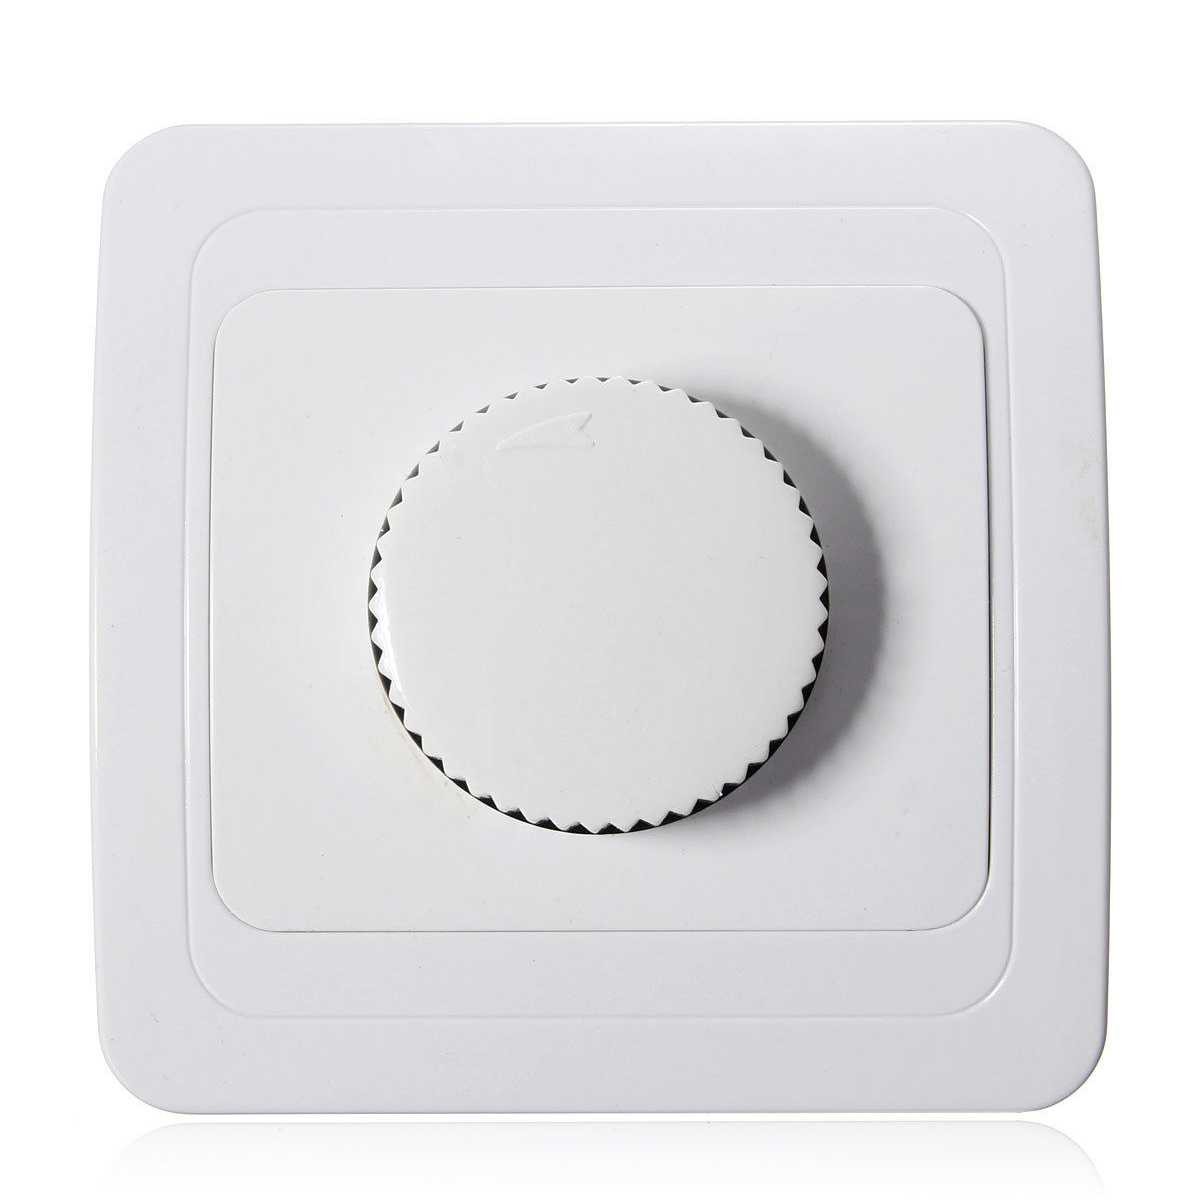 Dimmers dimmer switch para dimmable lâmpada Marca : Refurbishhouse